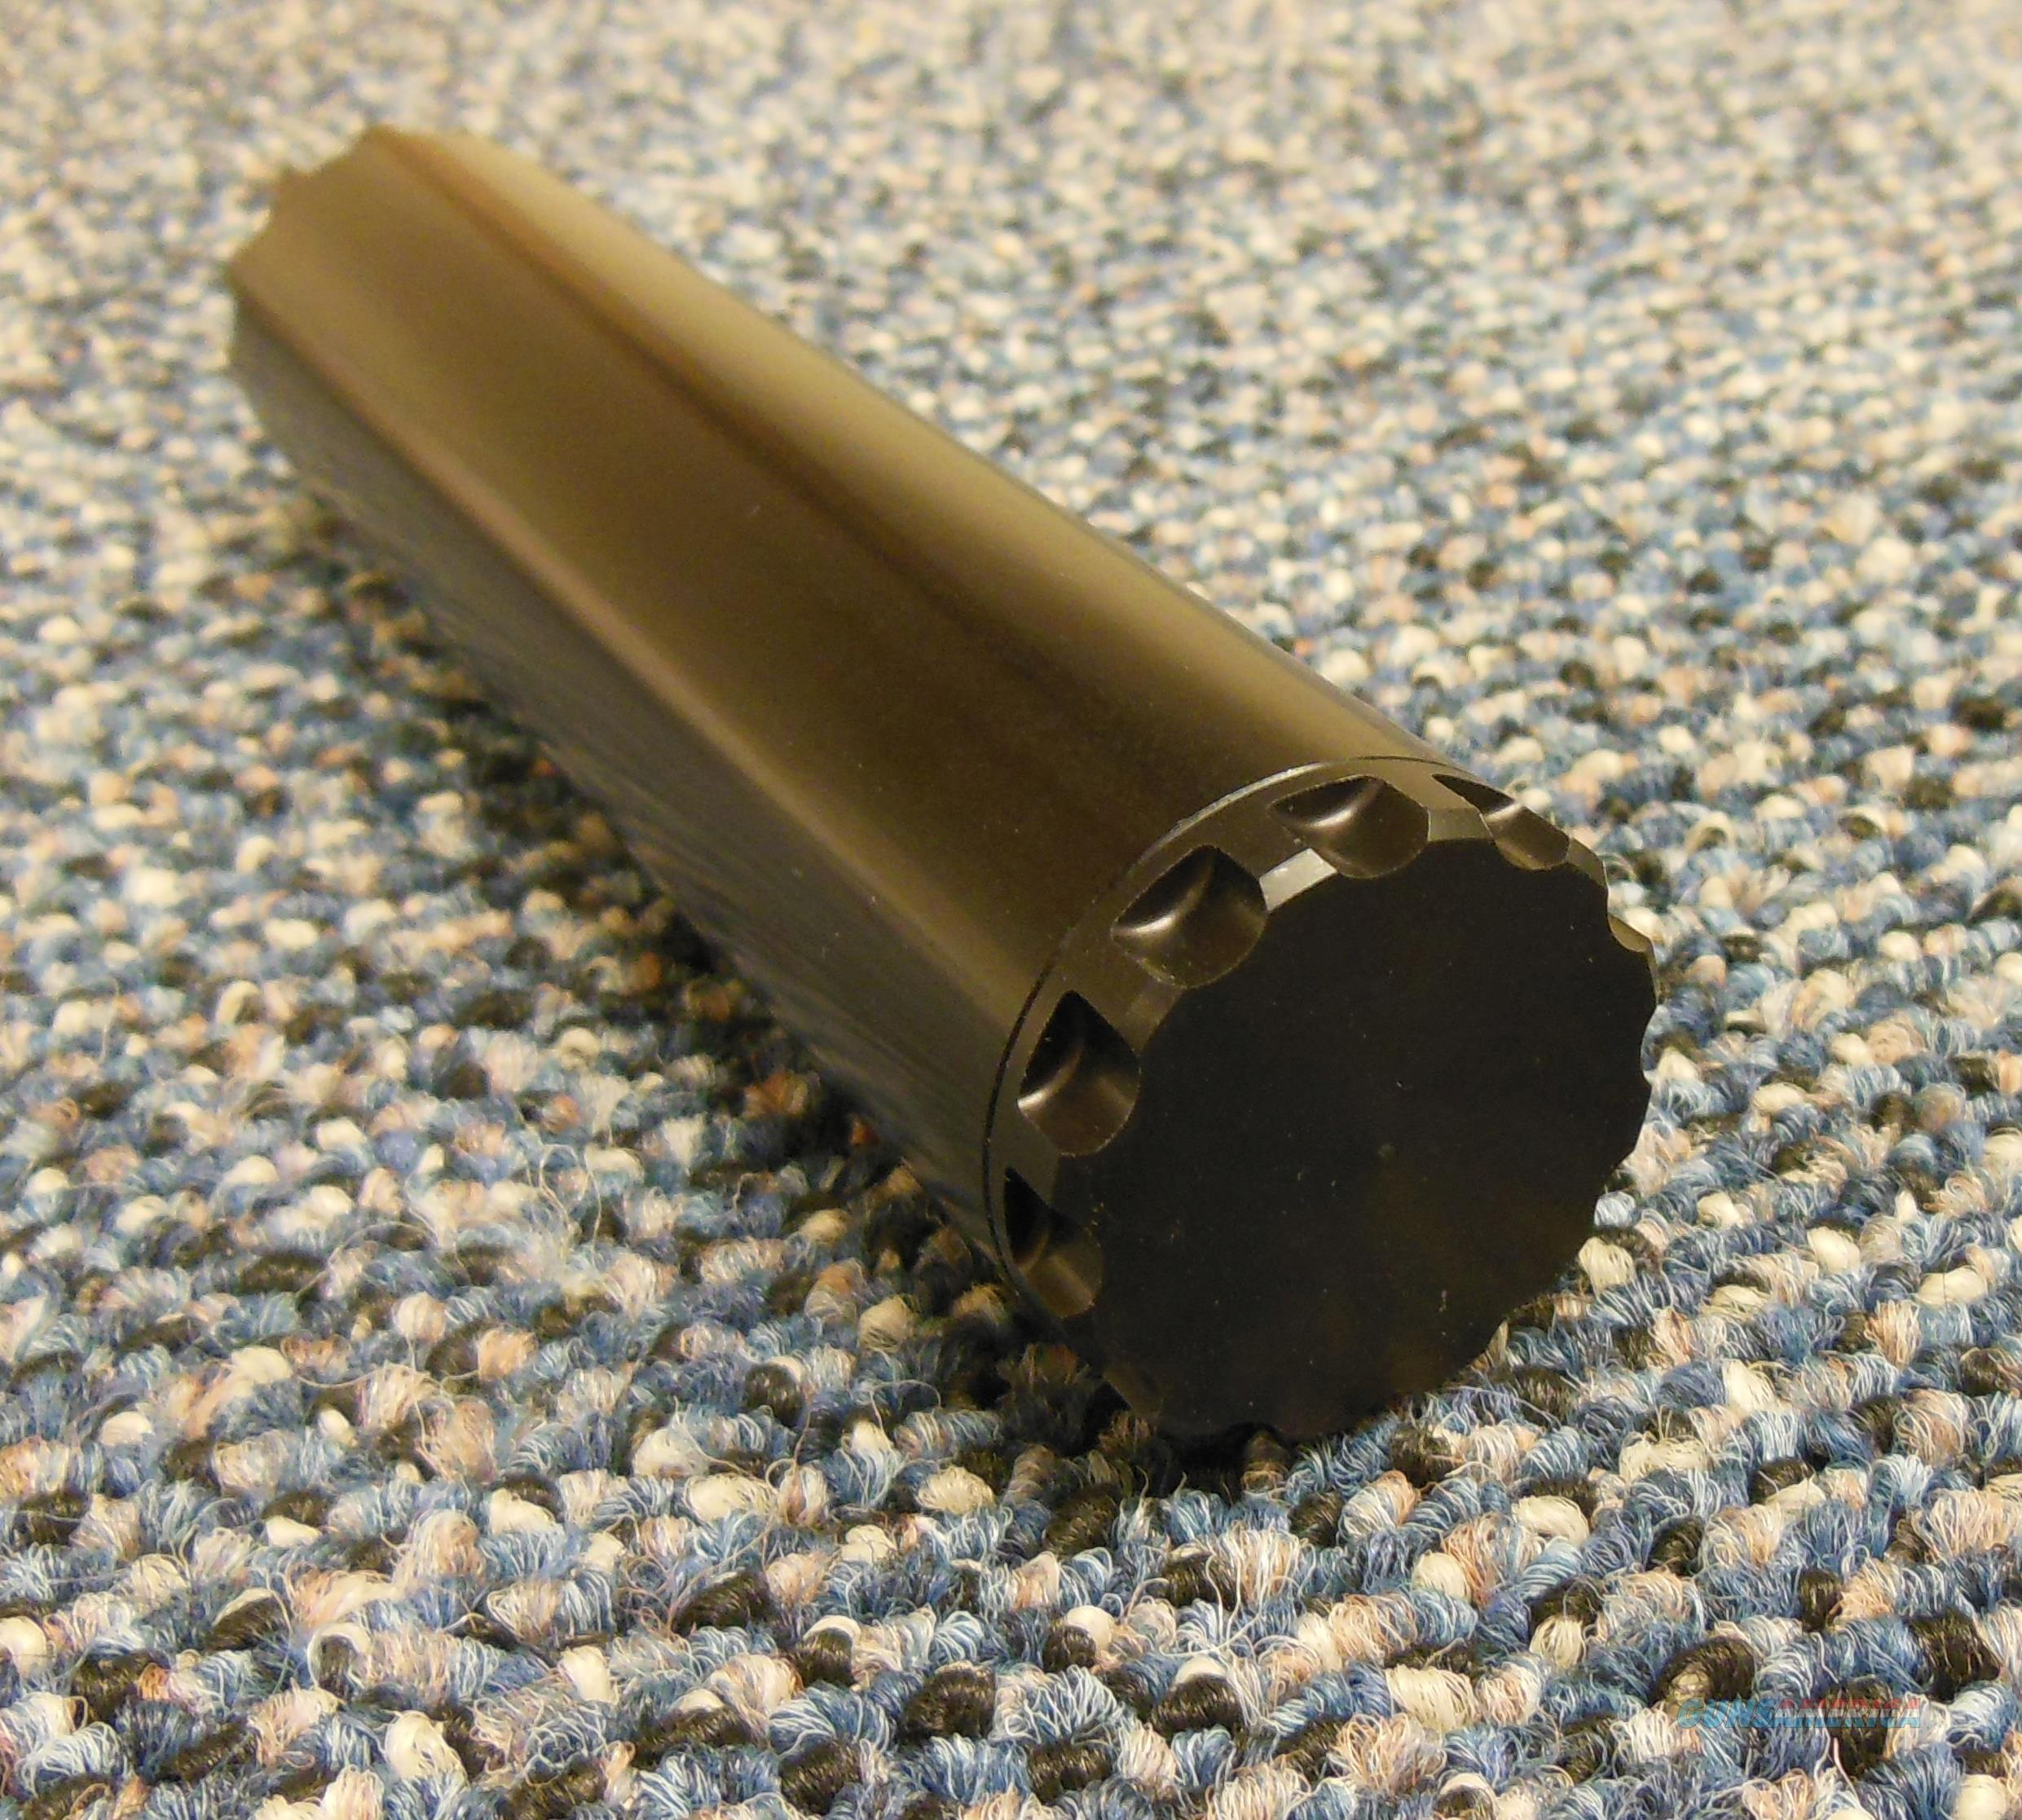 Complete Solvent Trap Pistol Kit Cleaning Accessory 1/2x28 Non-NFA Item